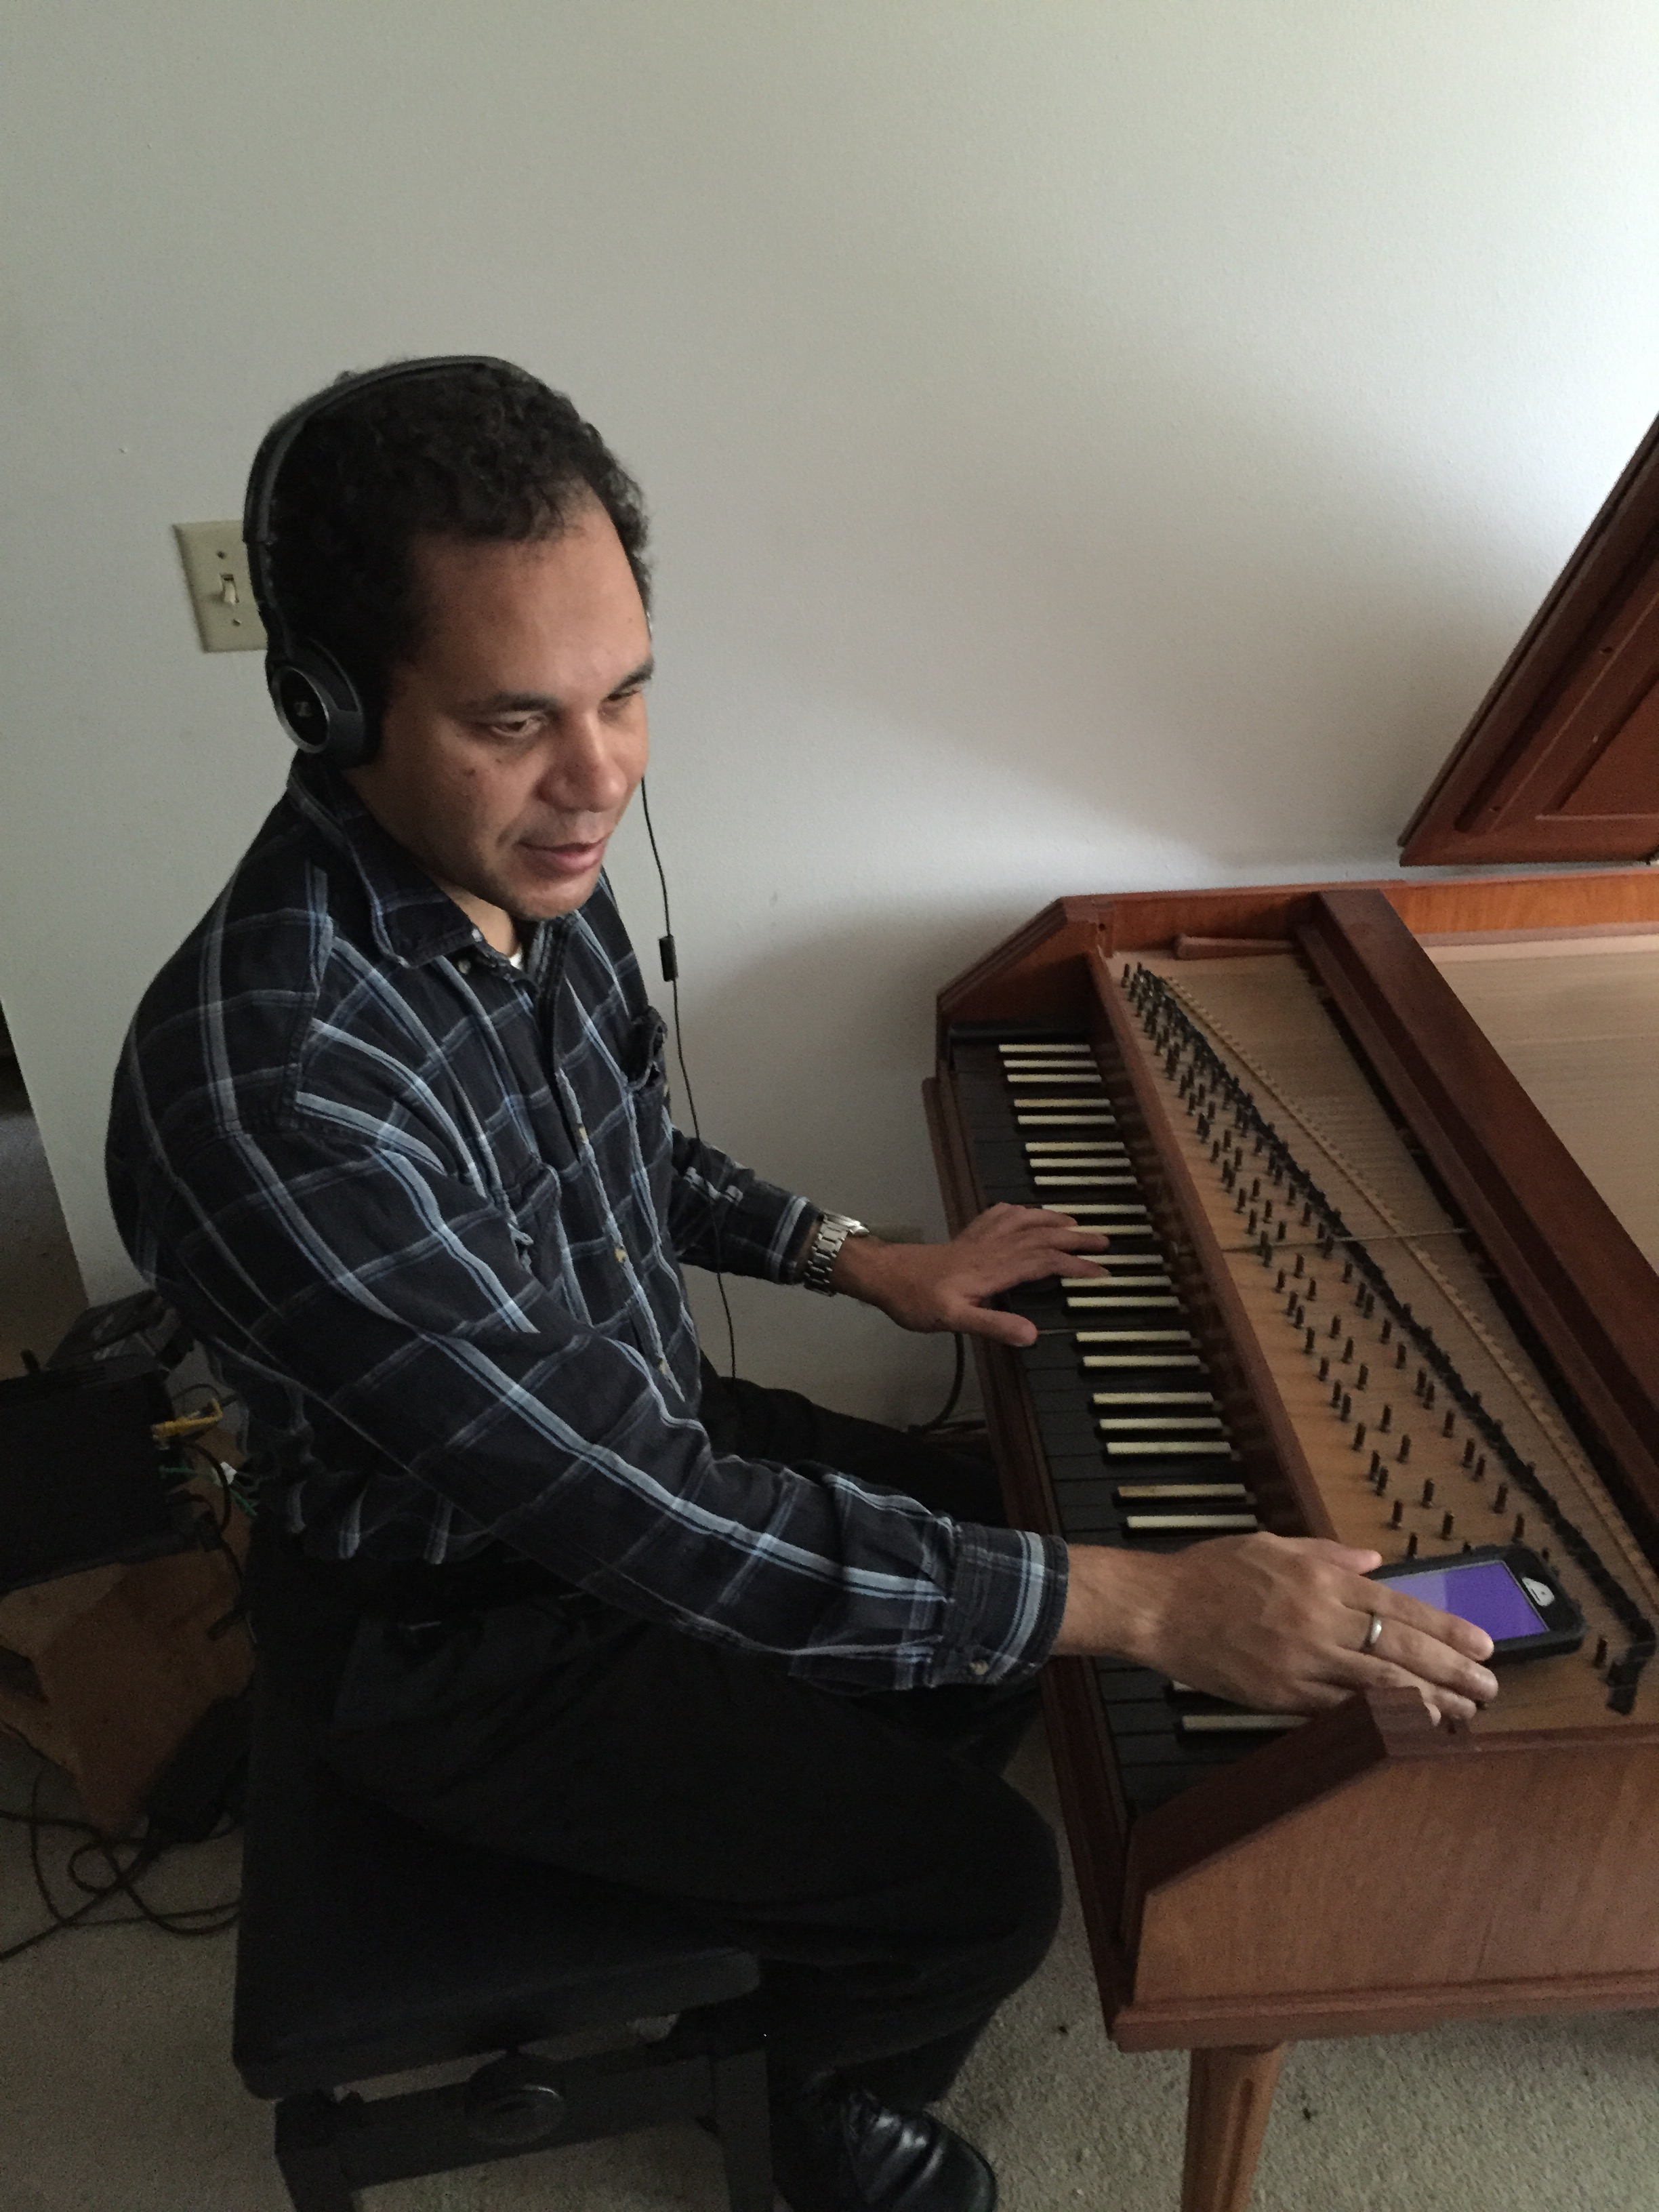 Kevin who uses accessible technology also plays the forte piano